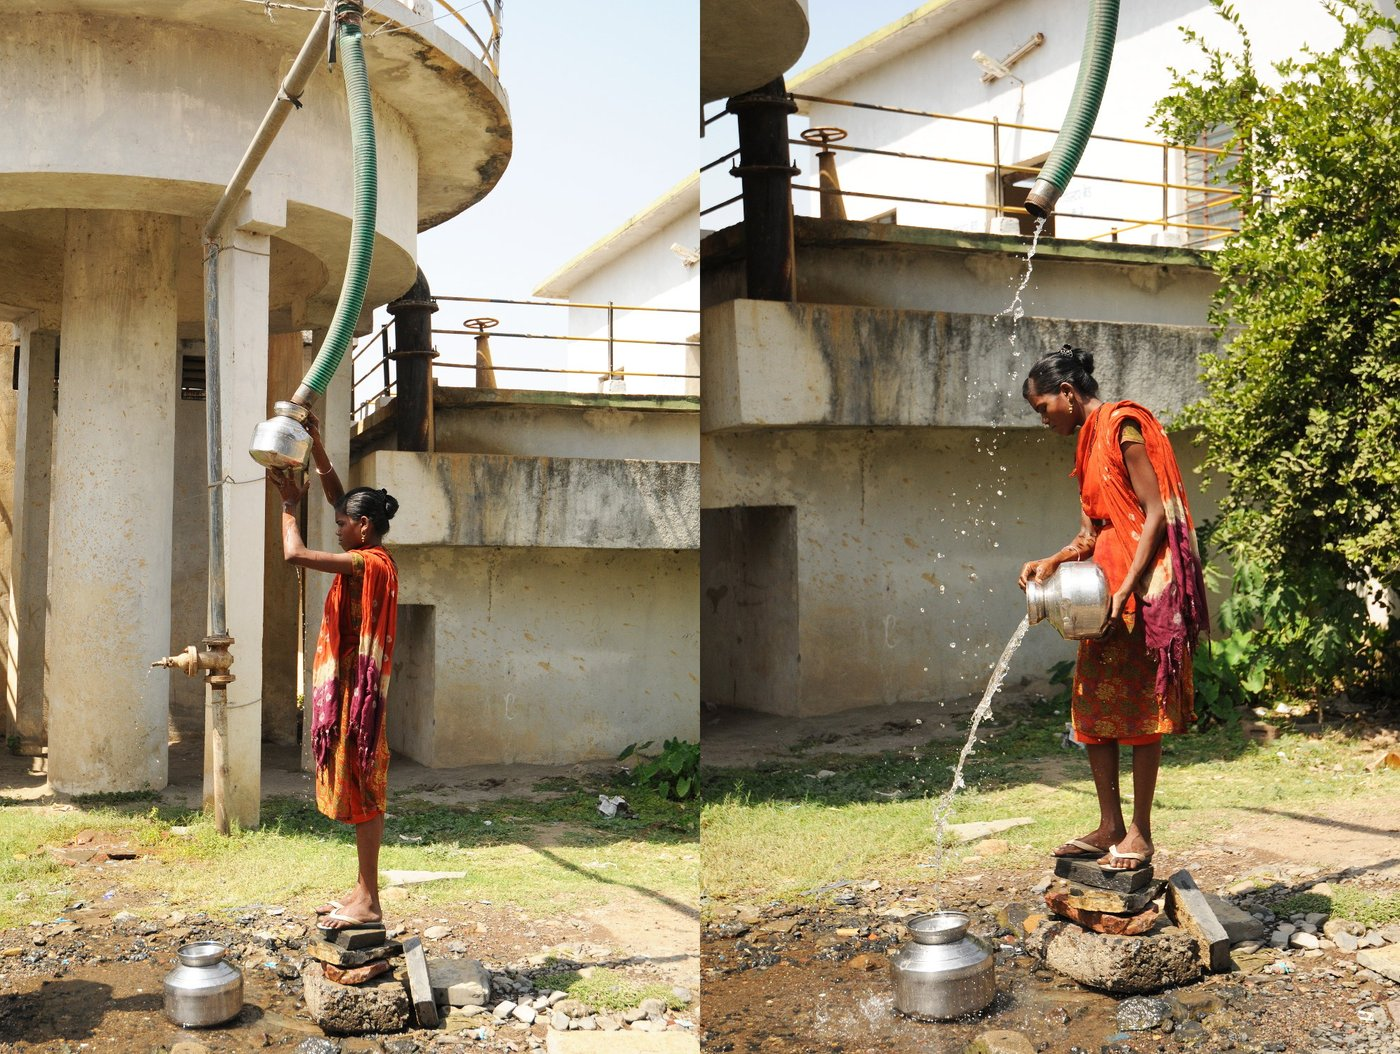 Two frames of women trying to fetch water